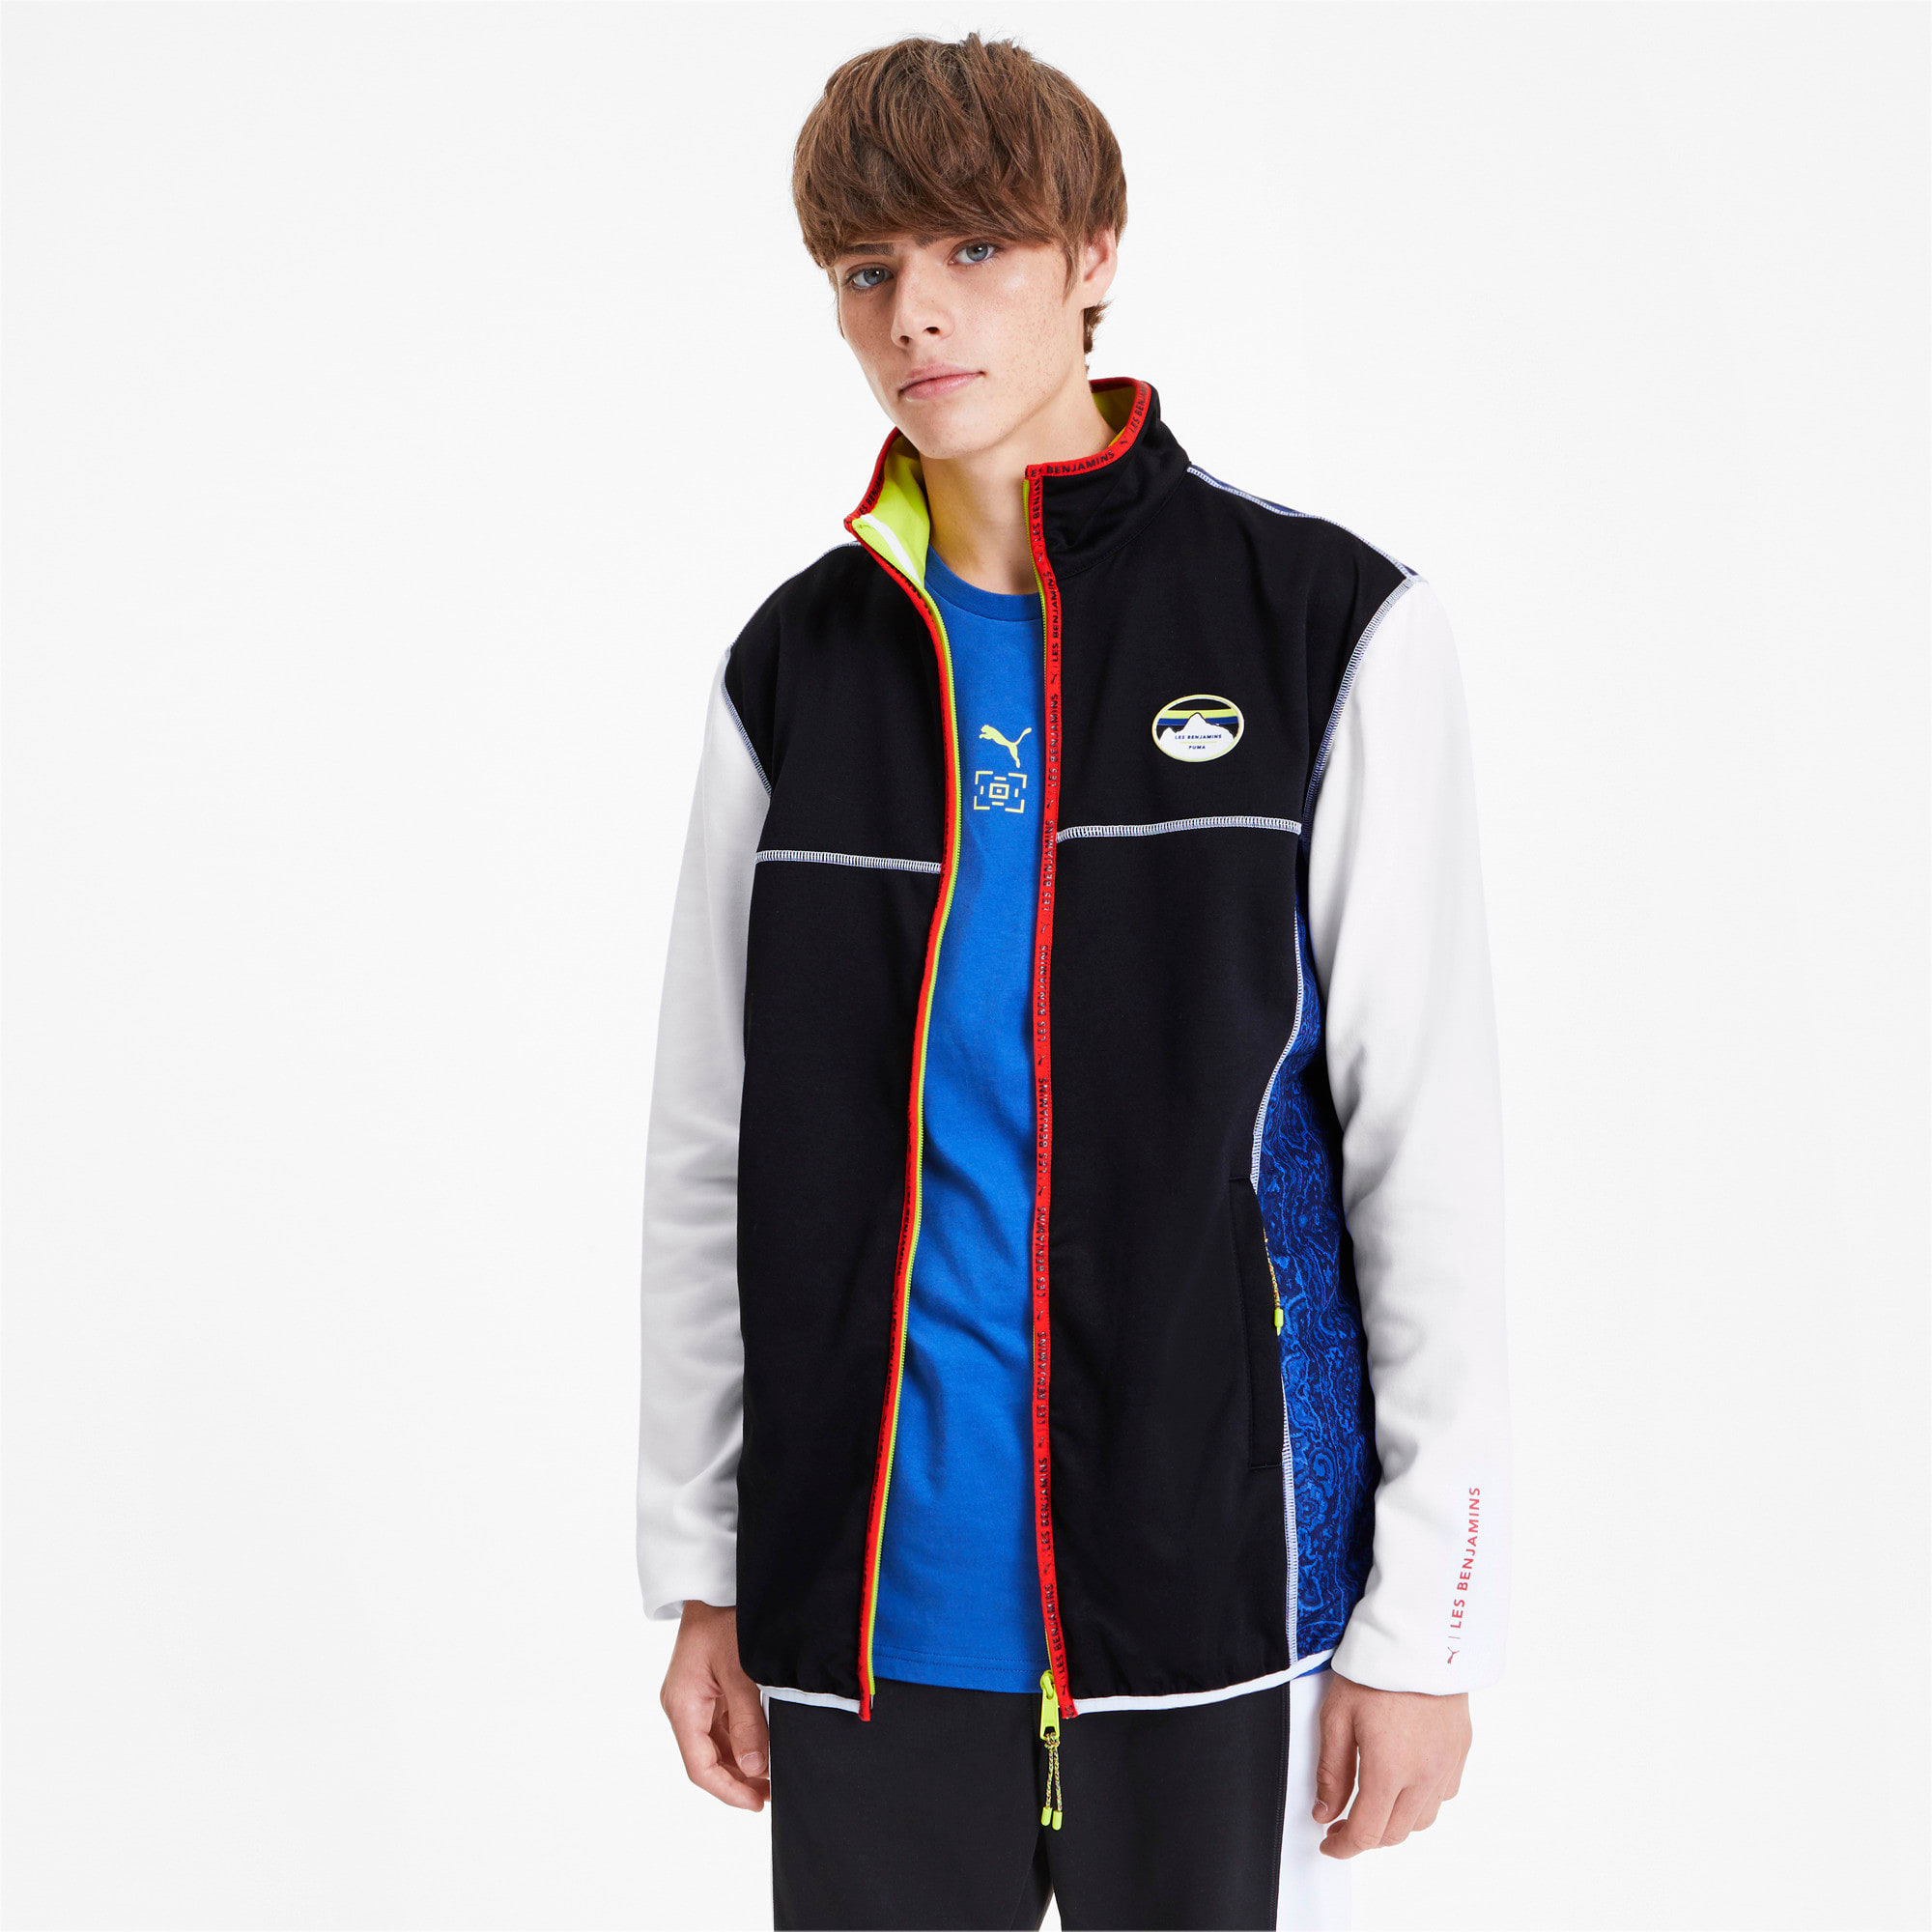 Thumbnail 1 of PUMA x LES BENJAMINS Men's Track Top, Puma White, medium